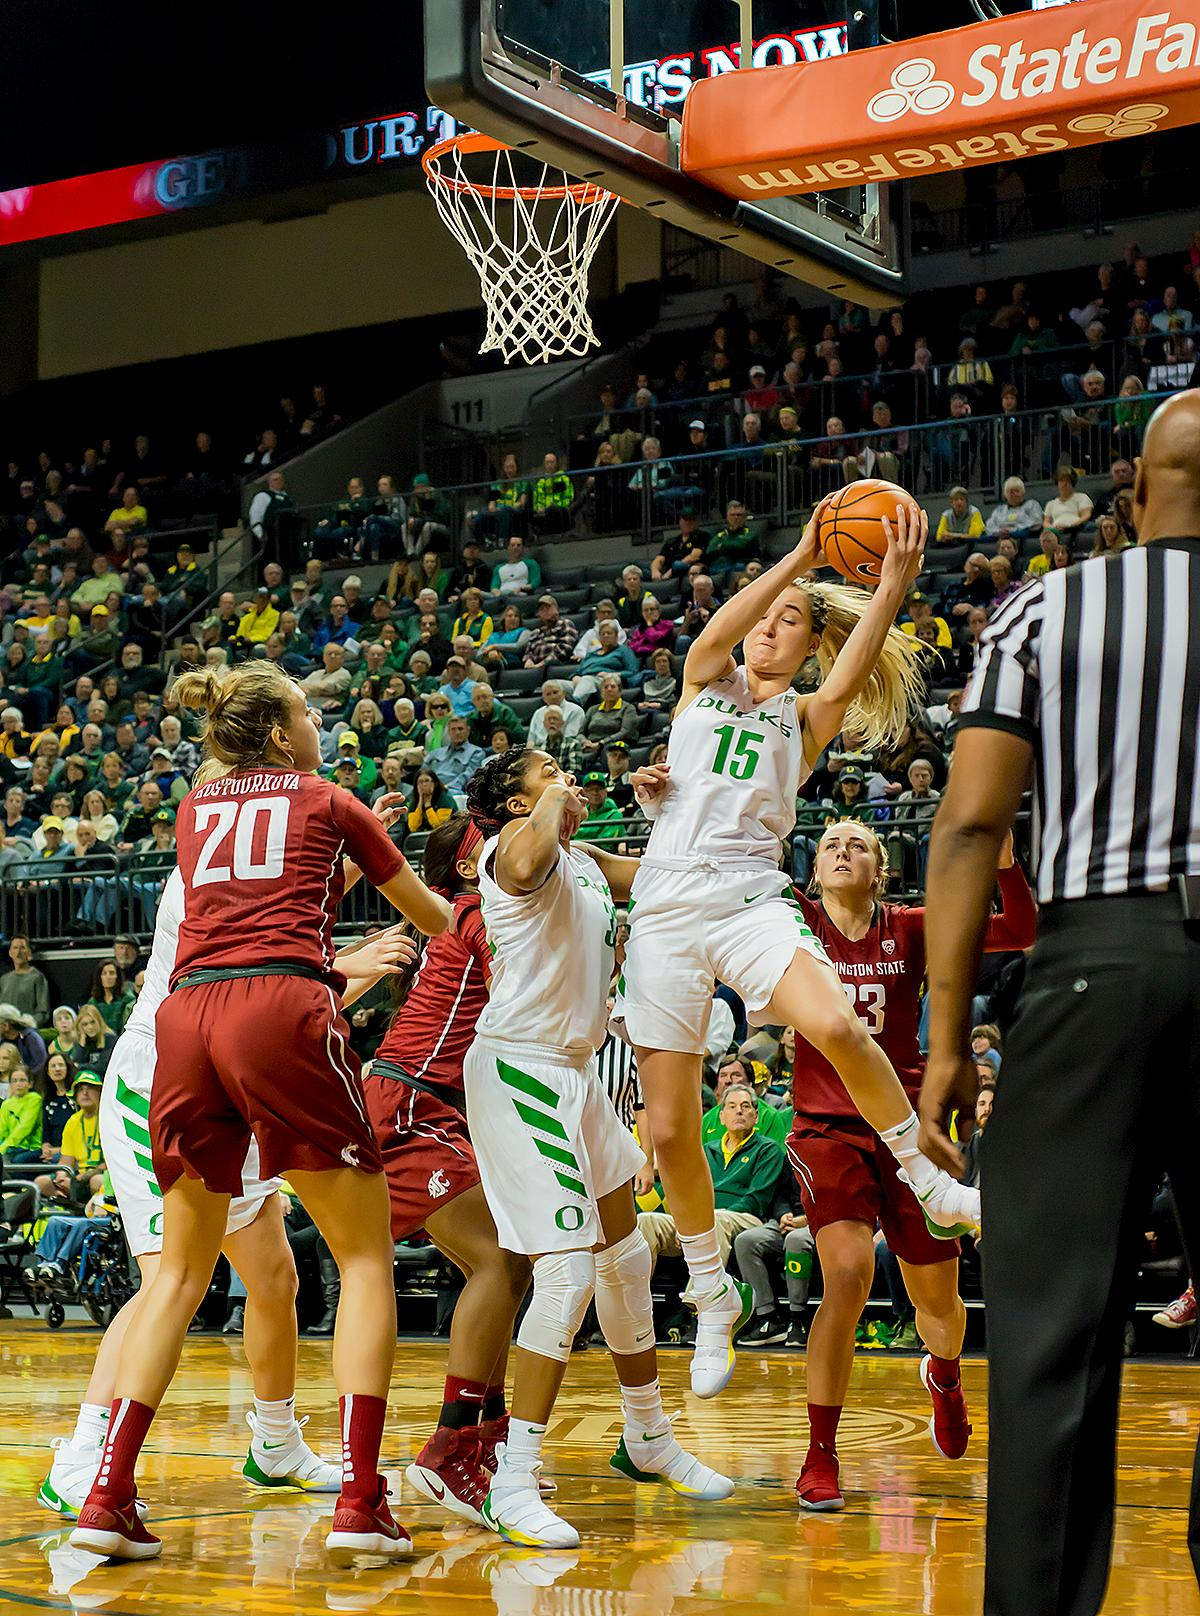 Oregon Ducks Anneli Maley (#15) comes down with a rebound. In their first conference basketball game of the season, the Oregon Women Ducks defeated the Washington State Cougars 89-56 in Matt Knight Arena Saturday afternoon. Oregon's Ruthy Hebard ran up 25 points with 10 rebounds. Sabrina Ionescu shot 25 points with five three-pointers and three rebounds. Lexi Bando added 18 points, with four three-pointers and pulled down three rebounds. Satou Sabally ended the game with 14 points with one three-pointer and two rebounds. The Ducks are now 12-2 overall with 1-0 in conference and the Cougars stand at 7-6 overall and 0-1 in conference play. The Oregon Women Ducks next play the University of Washington Huskies at 1:00 pm on Sunday. Photo by Karly DeWees, Oregon News Lab